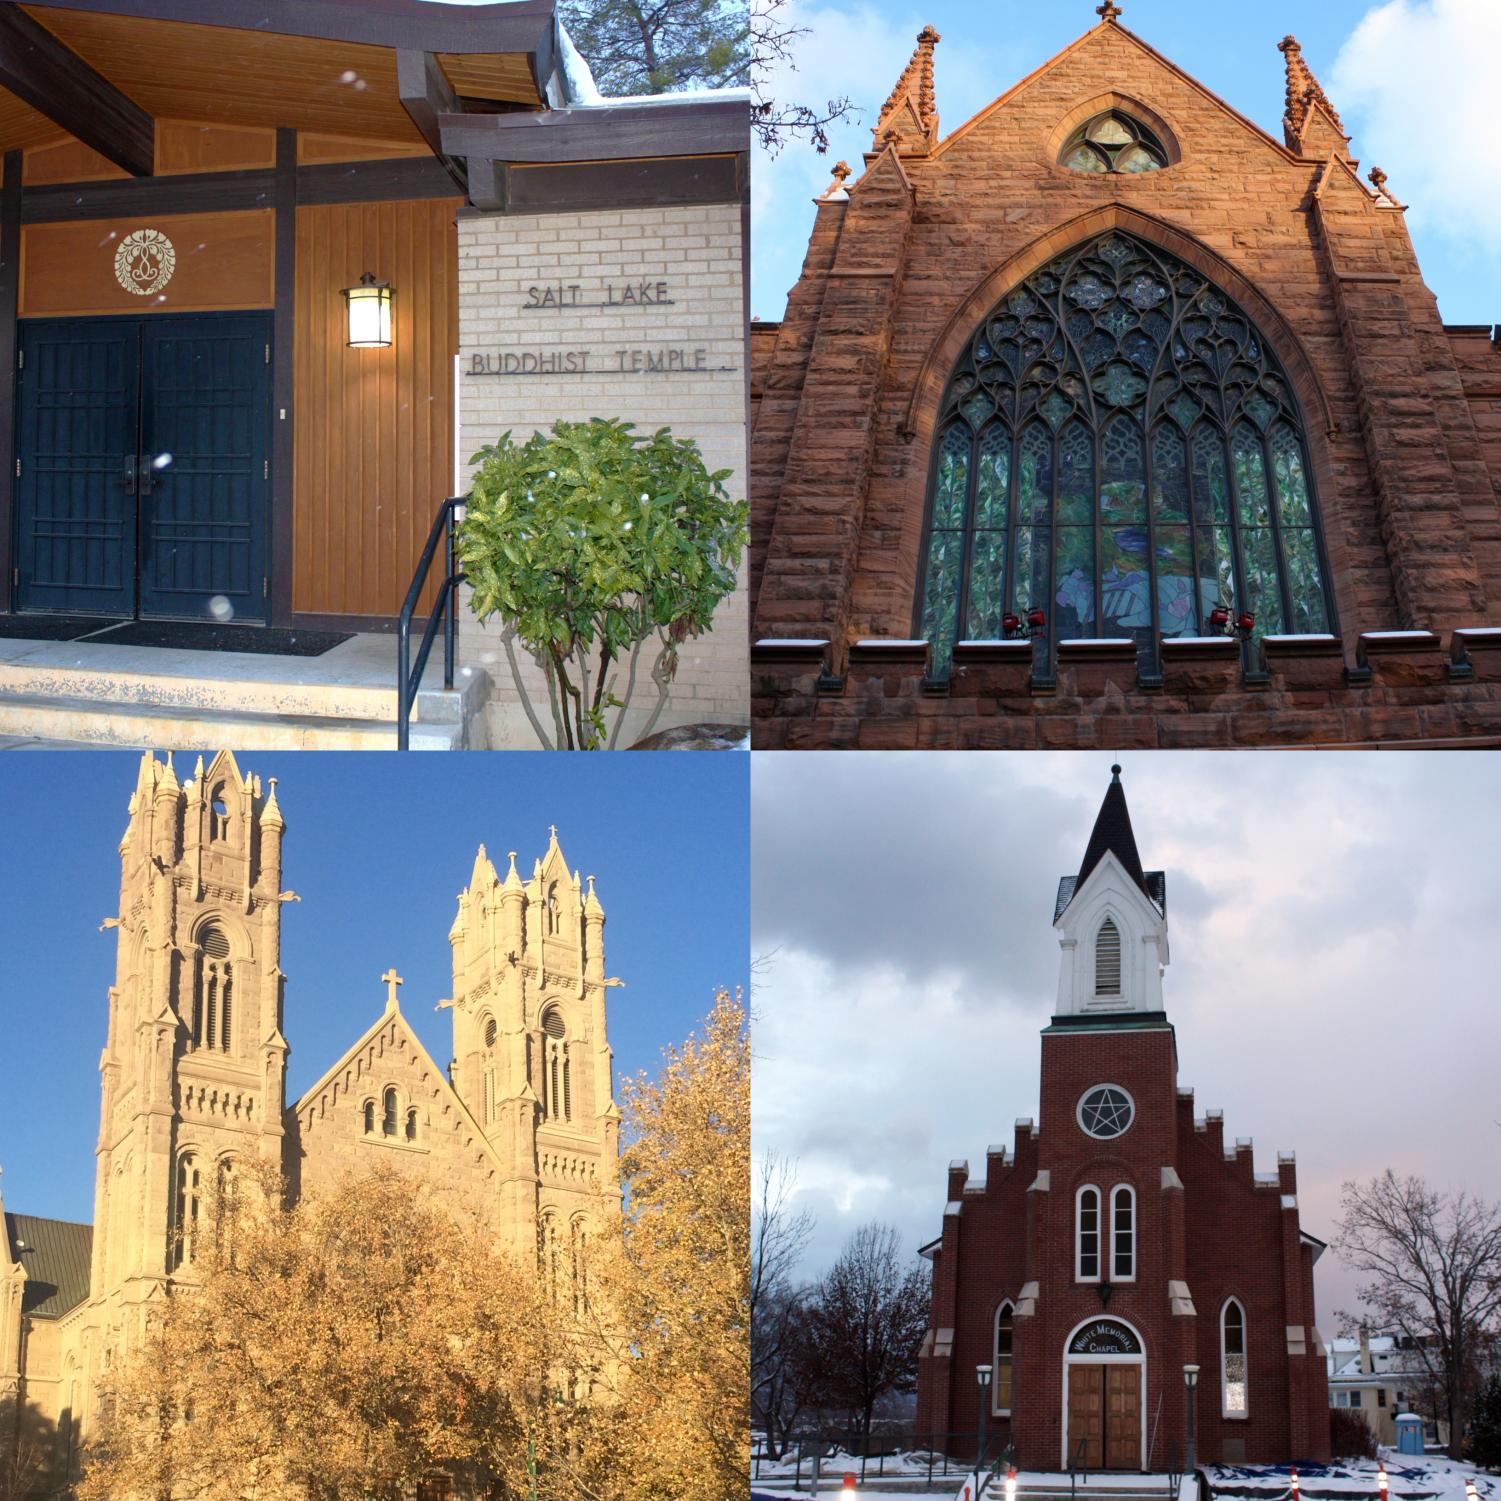 Top Left: Salt Lake Buddhist Temple Top Right: First Presbyterian Church of Salt Lake City Bottom Left: Cathedral of the Madeleine  Bottom Right: White Memorial Chapel